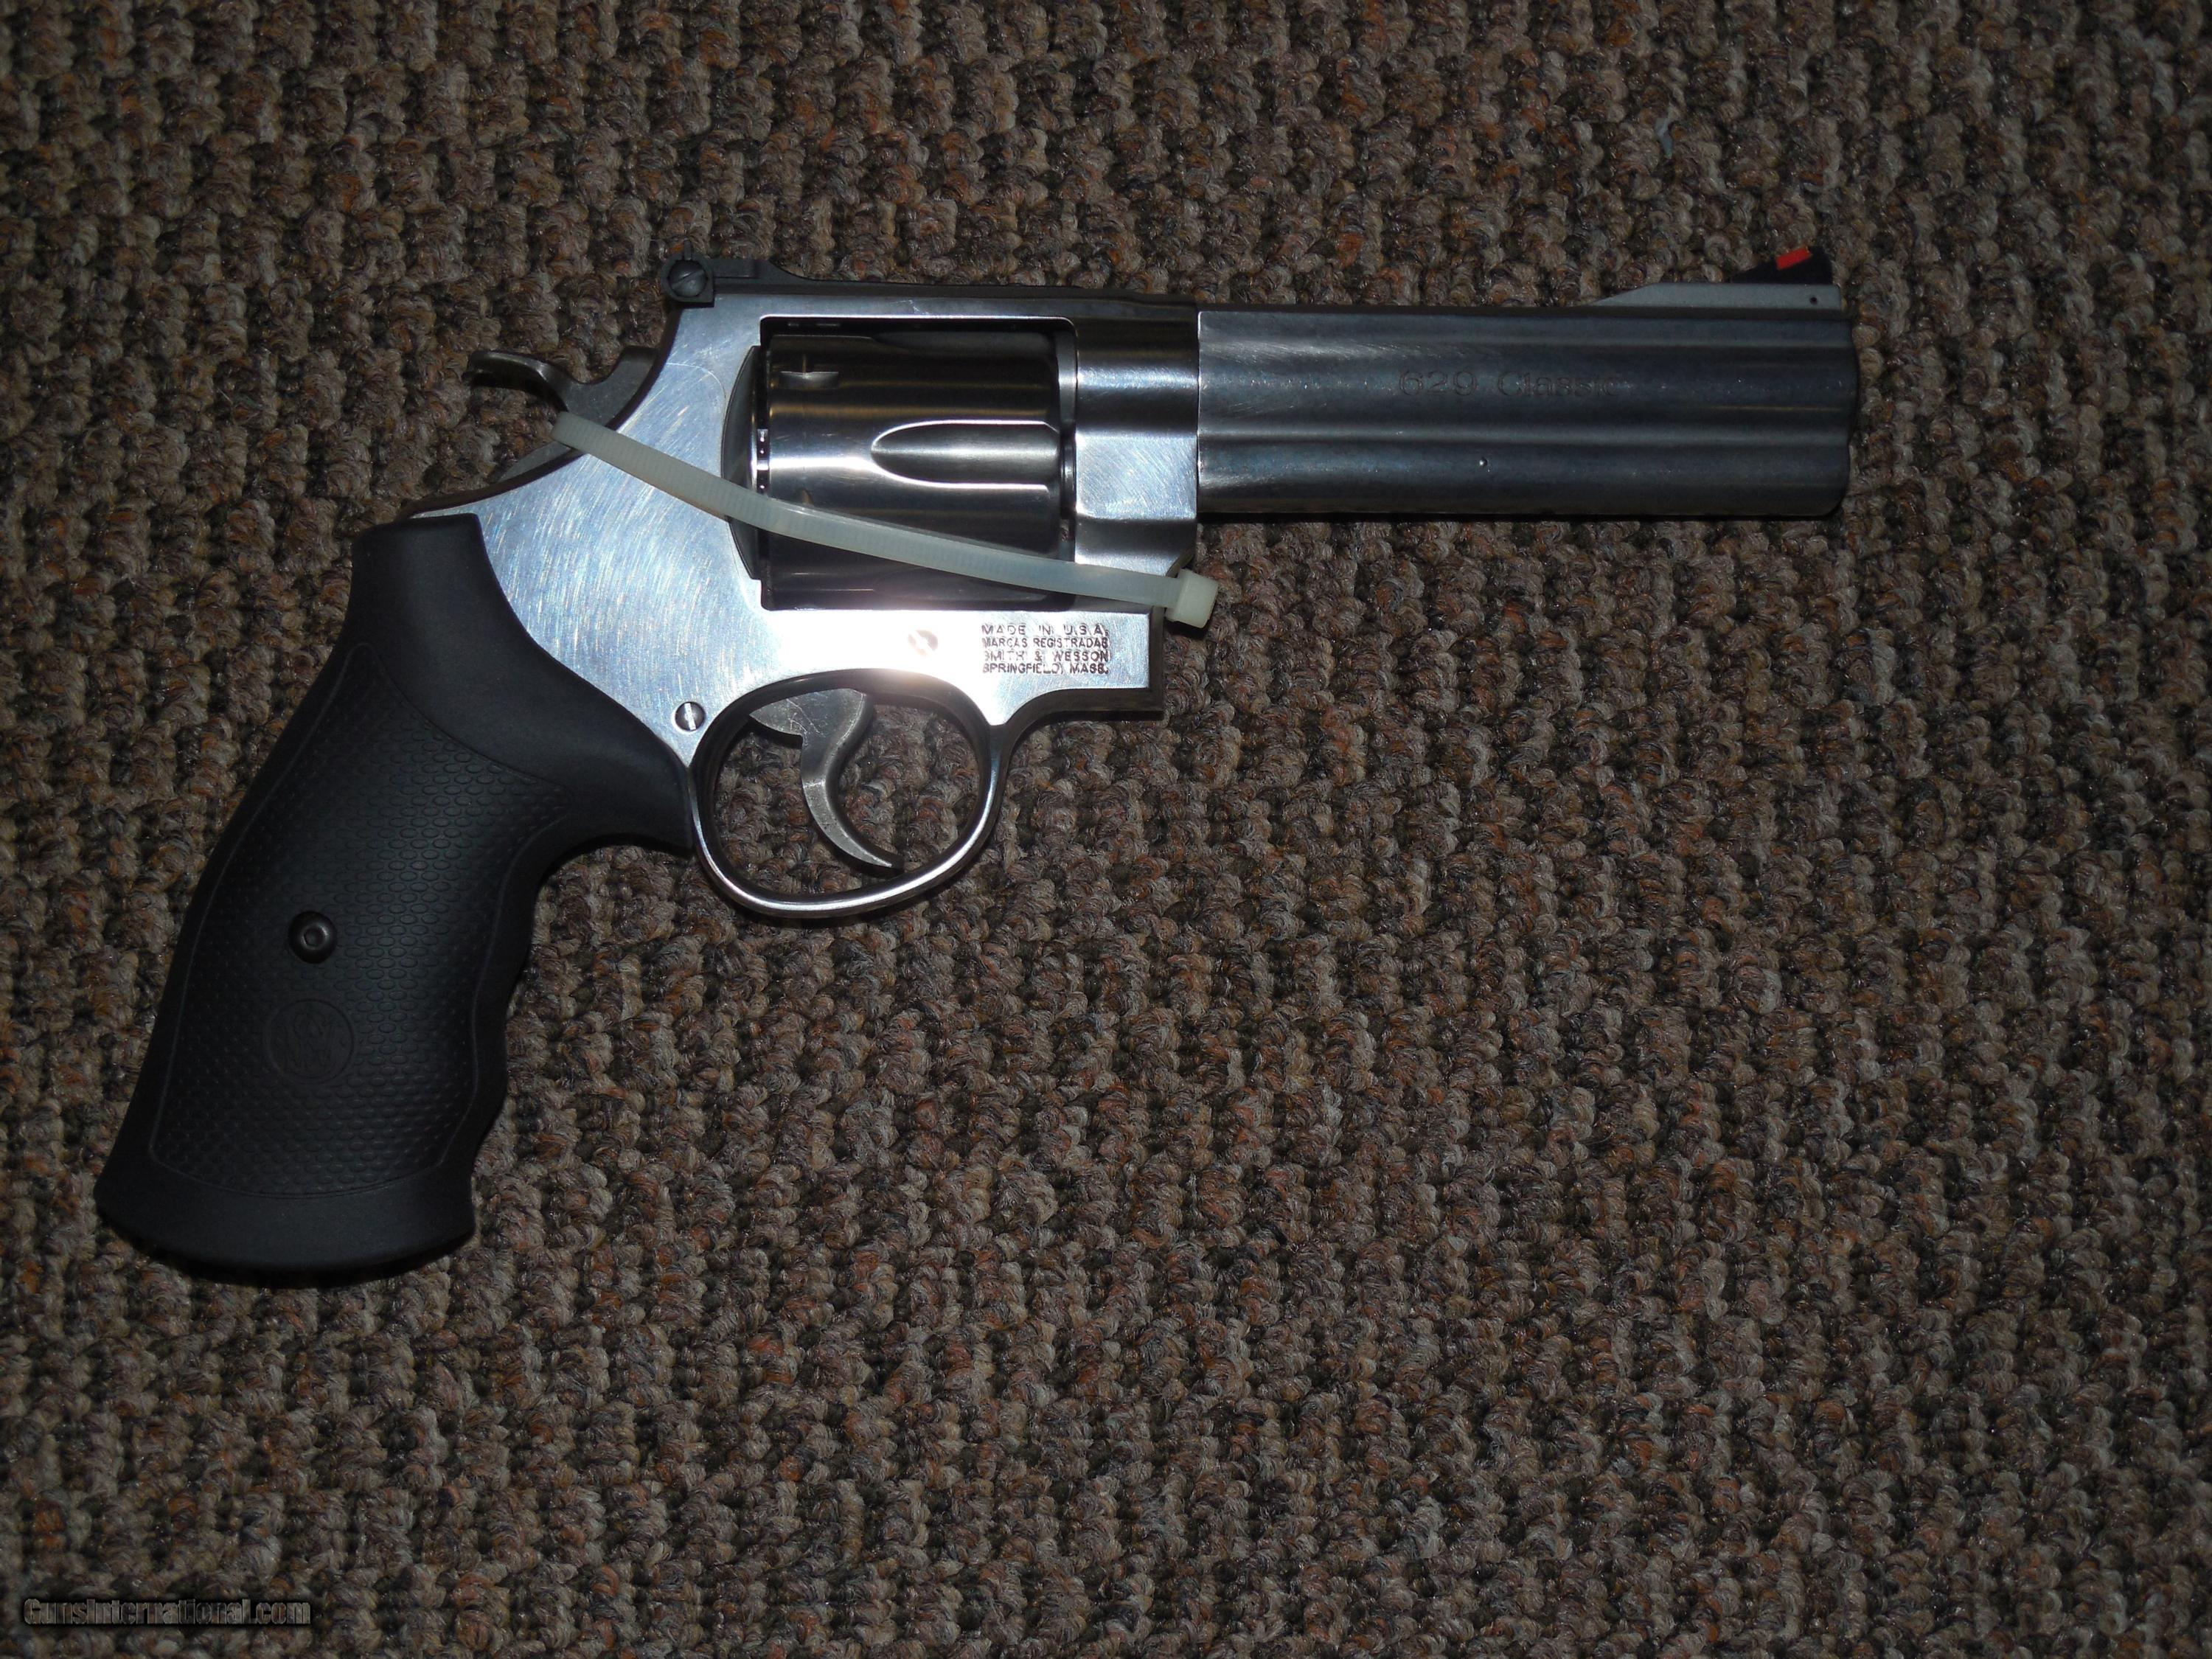 S&W MODEL 629 CLASSIC 5-INCH  44 MAGNUM STAINLESS REVOLVER